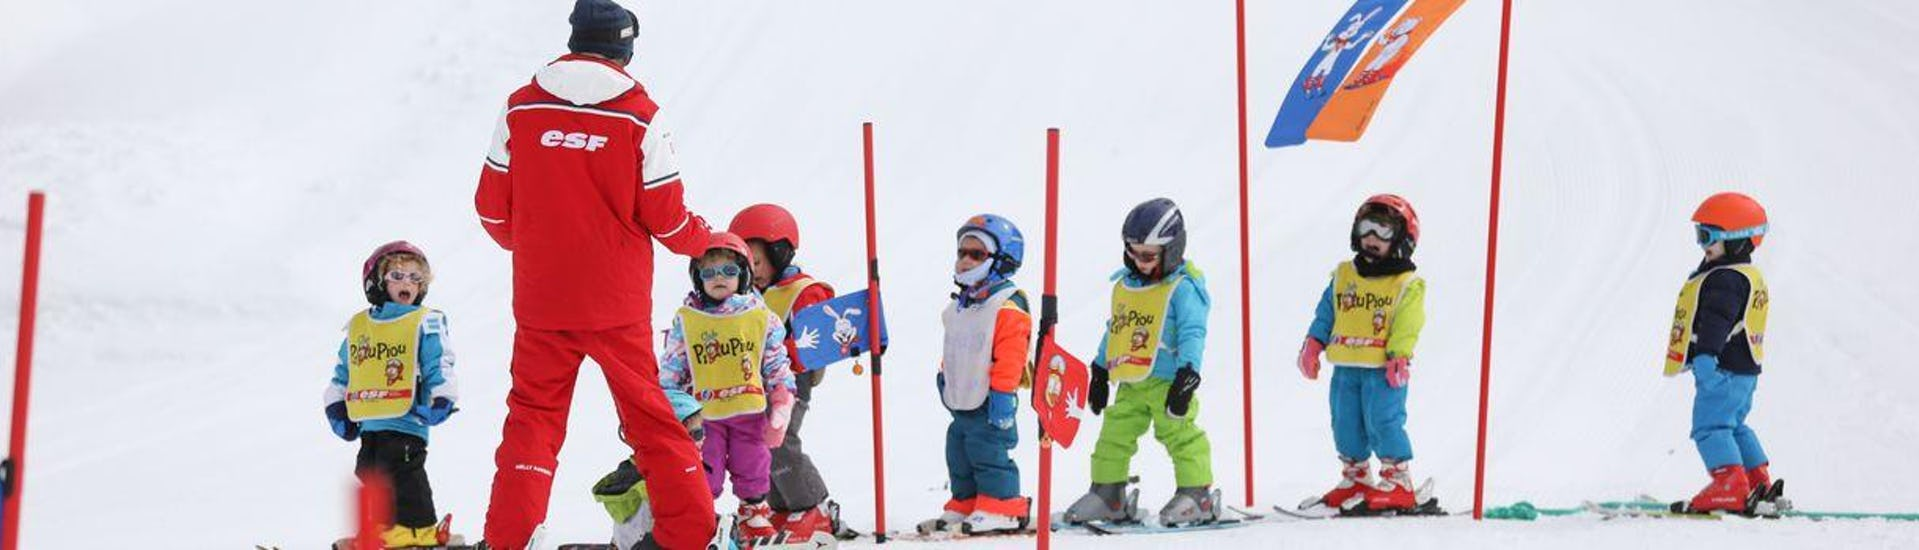 "Kids are standing in line learning to find their balance on skis during their Kids Ski Lessons ""Piou-Piou"" (3-5 years) with the ski school ESF du Dévoluy."